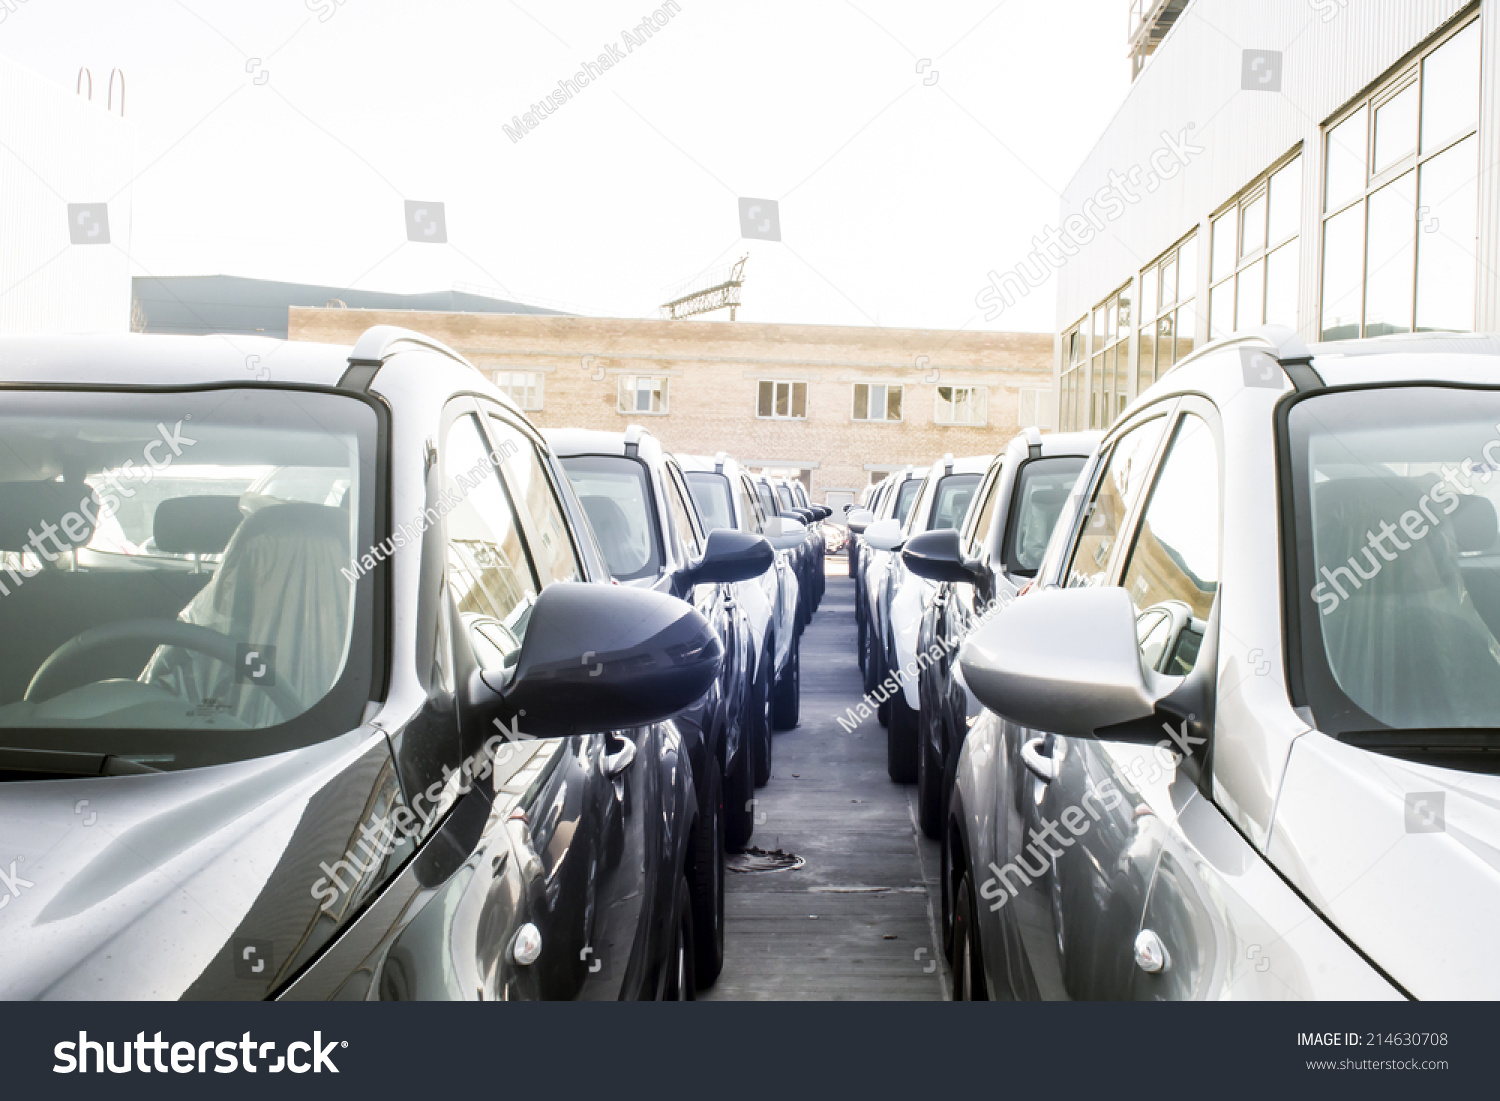 Row New Cars Parked Car Dealer Stock Photo 214630708 Shutterstock